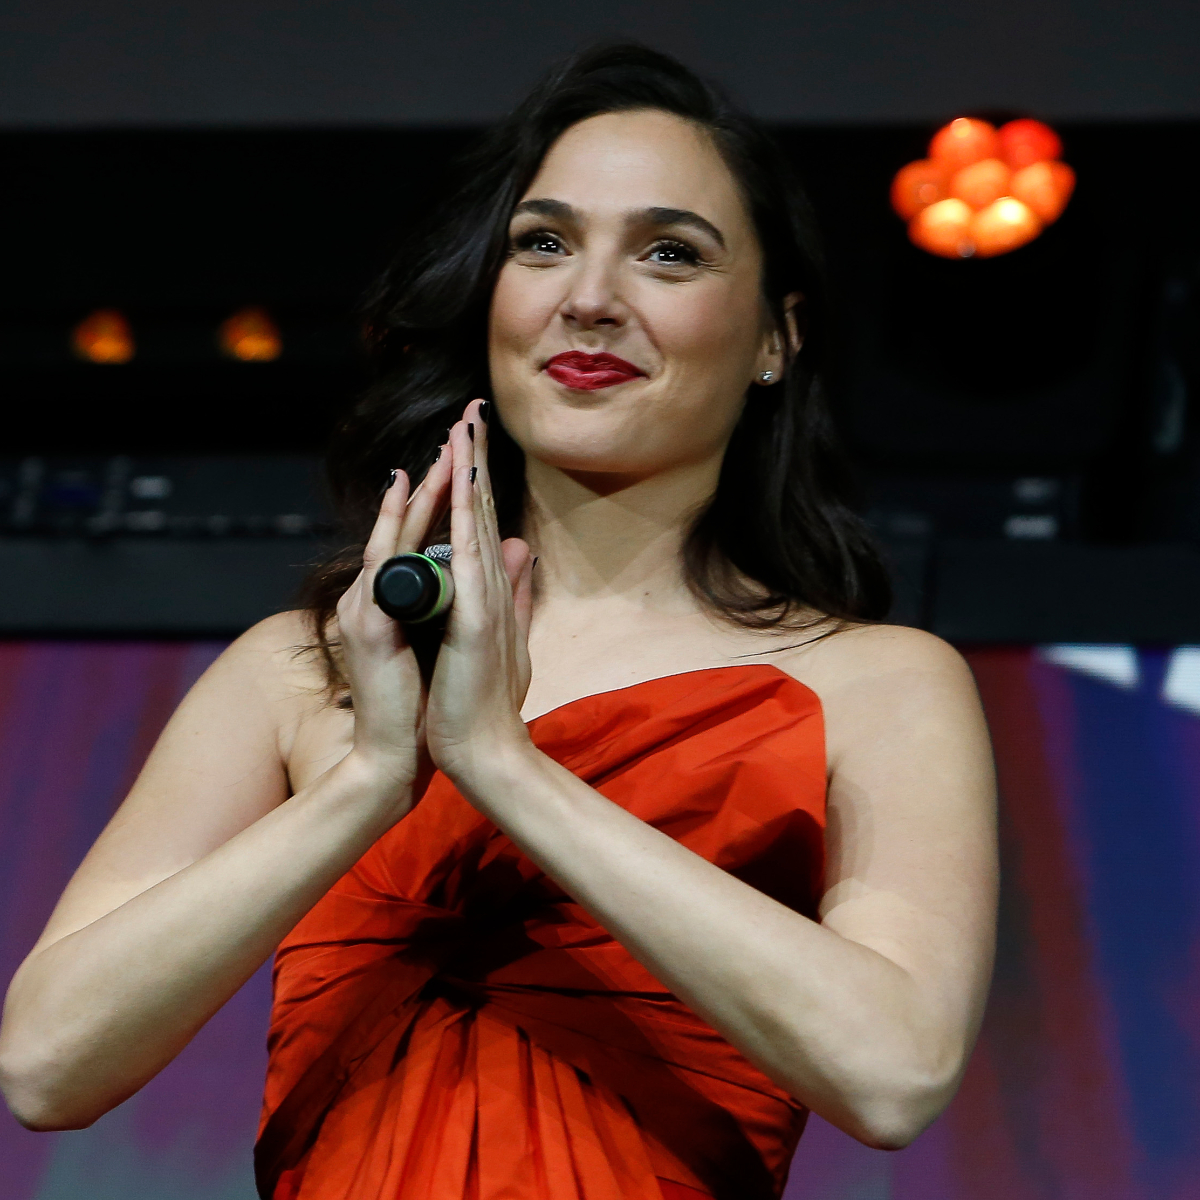 Wonder Woman 1984's Gal Gadot looks vivacious in a red number as promotes her movie at 2019 CCXP; View Pics